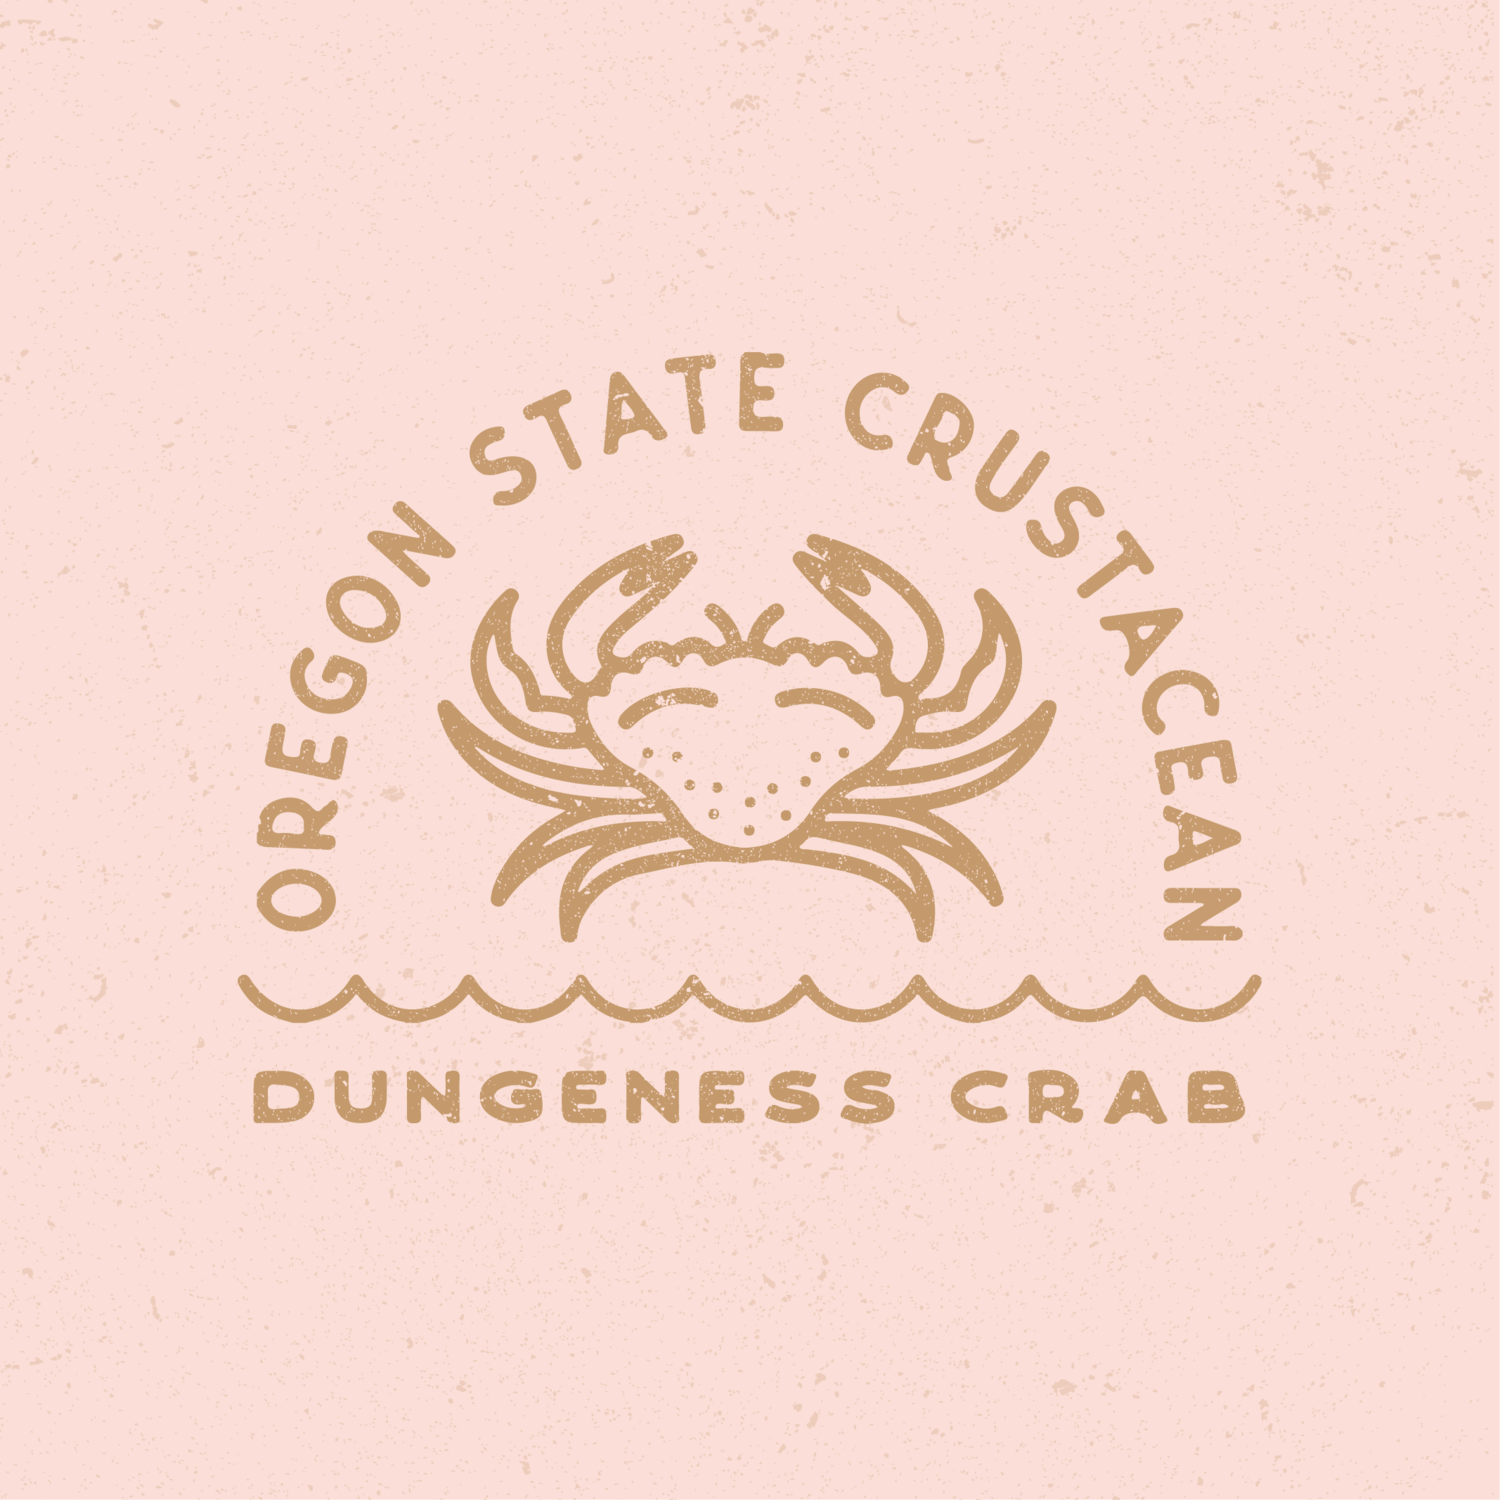 state_crustacean-01.png